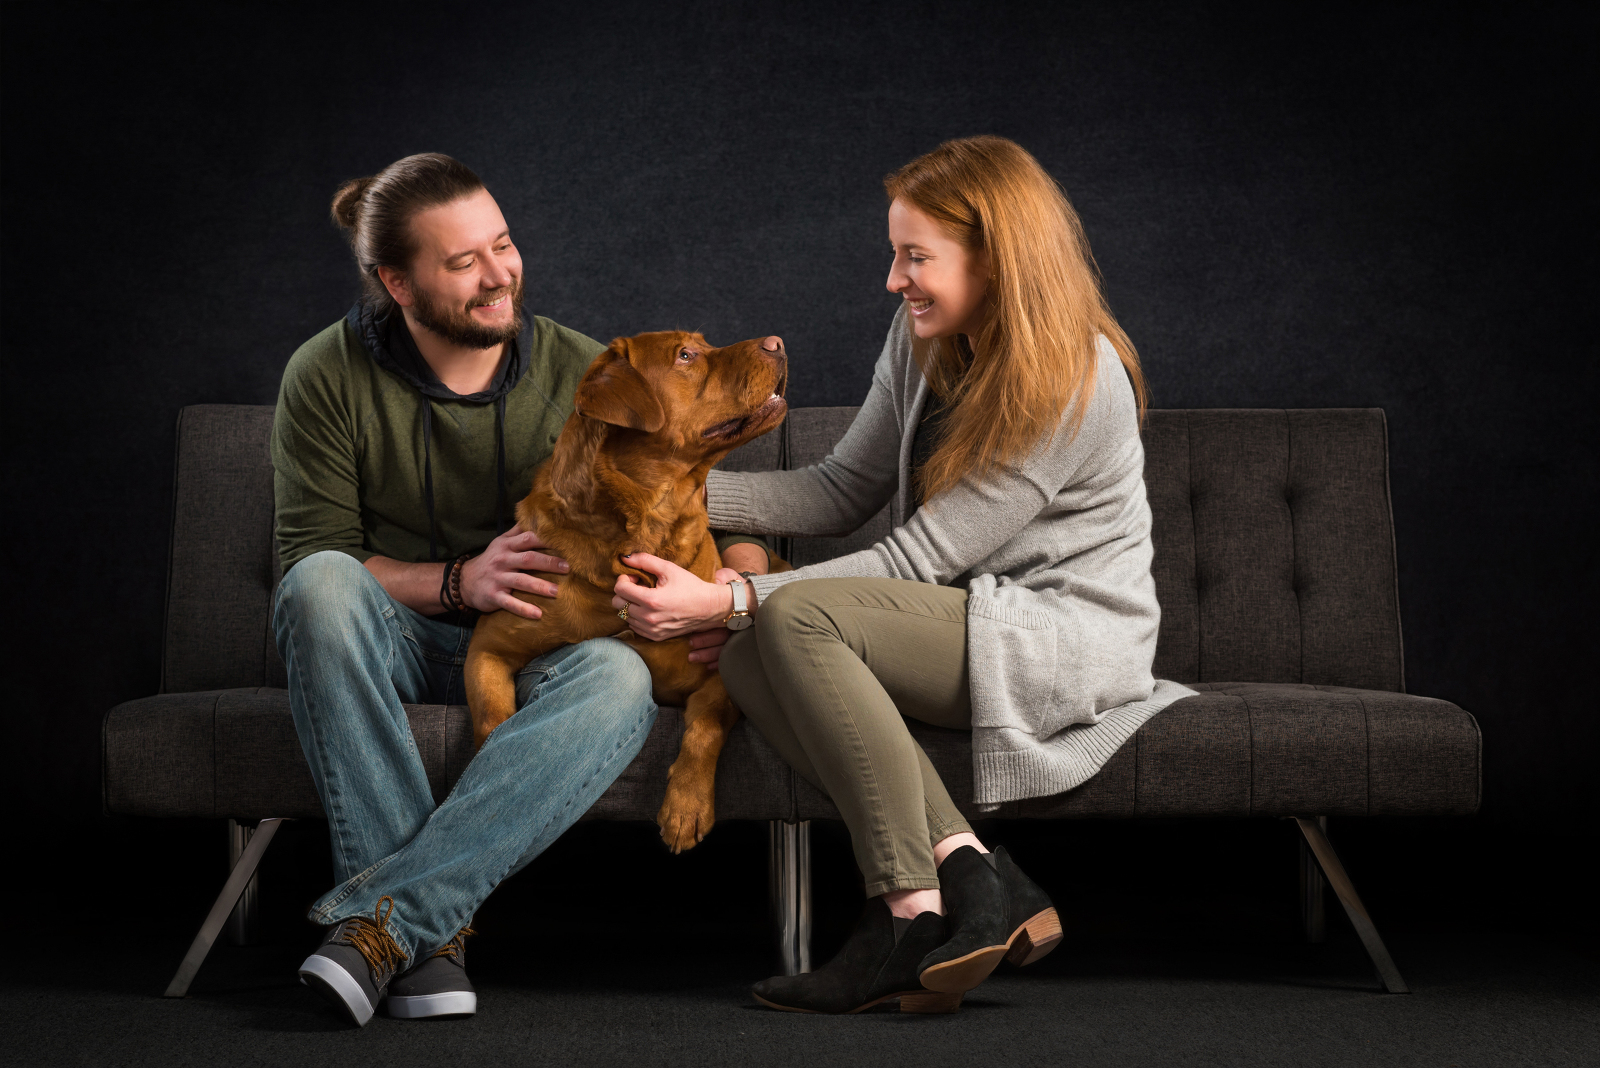 Pet parents of dog Nershi cozying up together on a couch during their photoshoot. Photographed by Candice Cusic